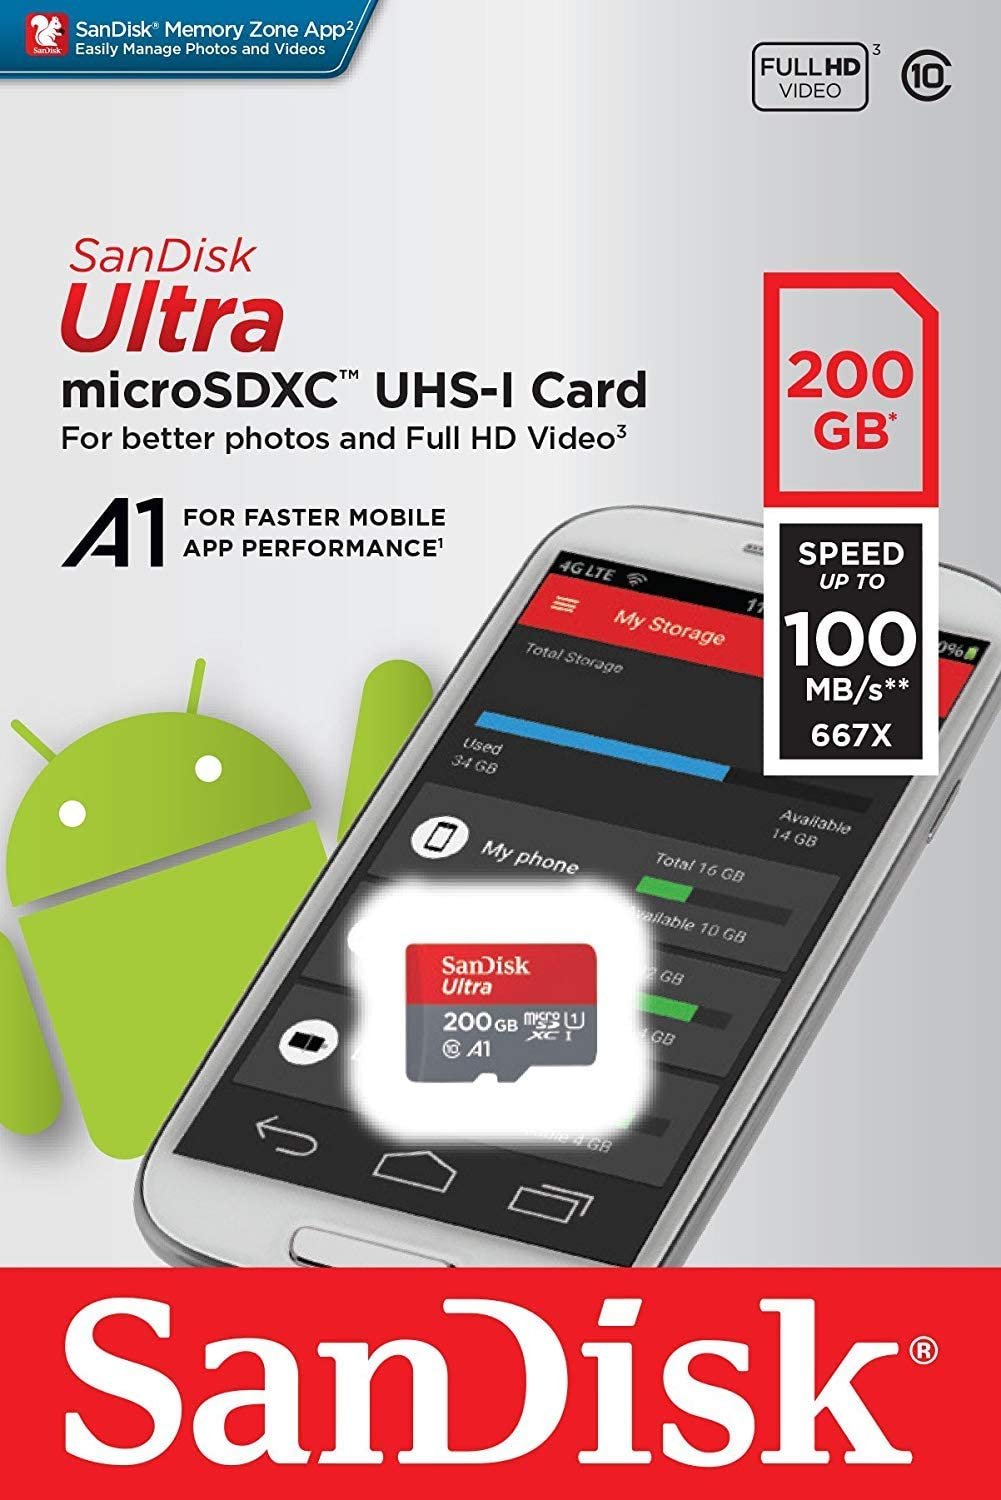 SanDisk Ultra 200GB MicroSDXC Verified for LG X Power 2 by SanFlash 100MBs A1 U1 C10 Works with SanDisk